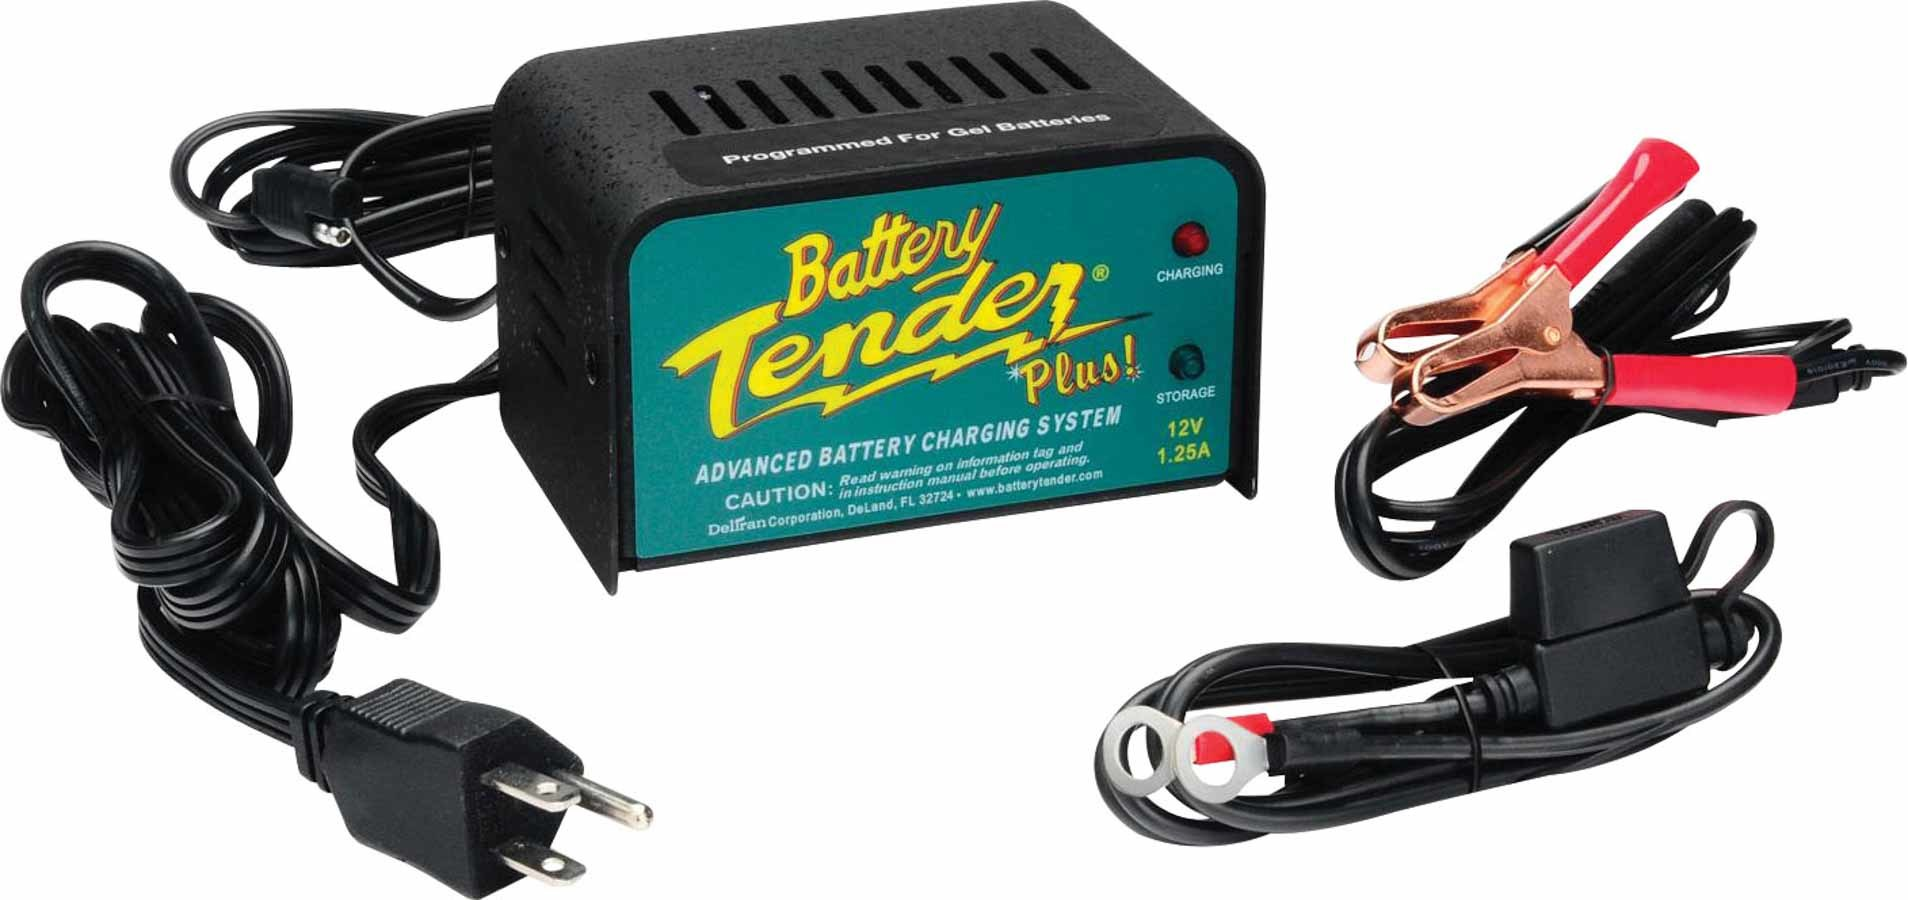 Battery Tender 021-0128 Battery Charger, Battery Tender Plus, 12V, 1.25 amp, 4 Step Charging Program, Quick Connect Harness, Each